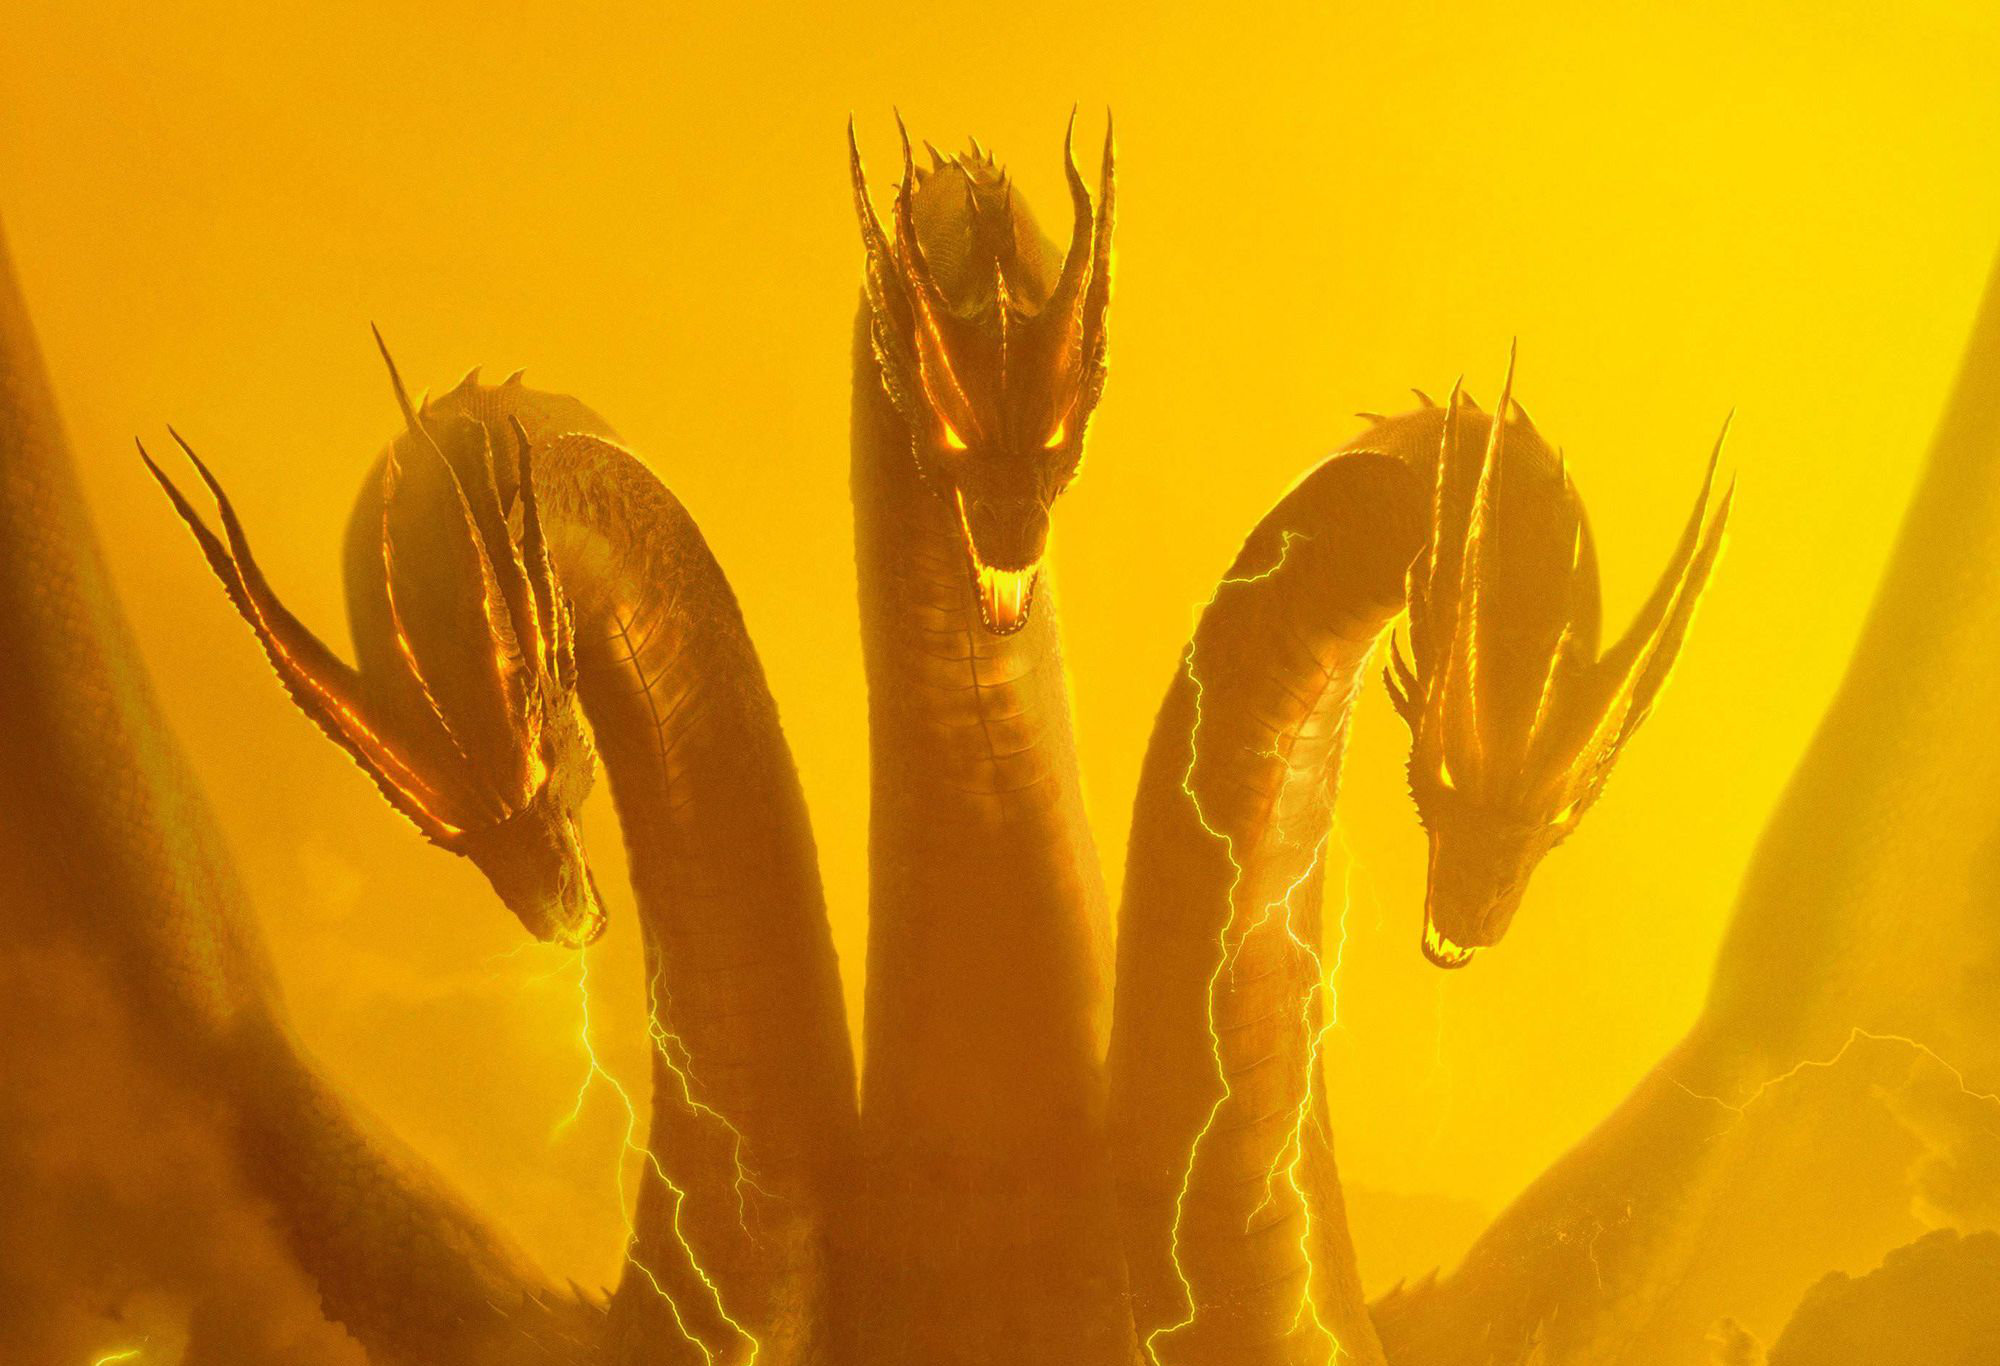 Ghidorah Reacts to Godzilla: King of the Monsters